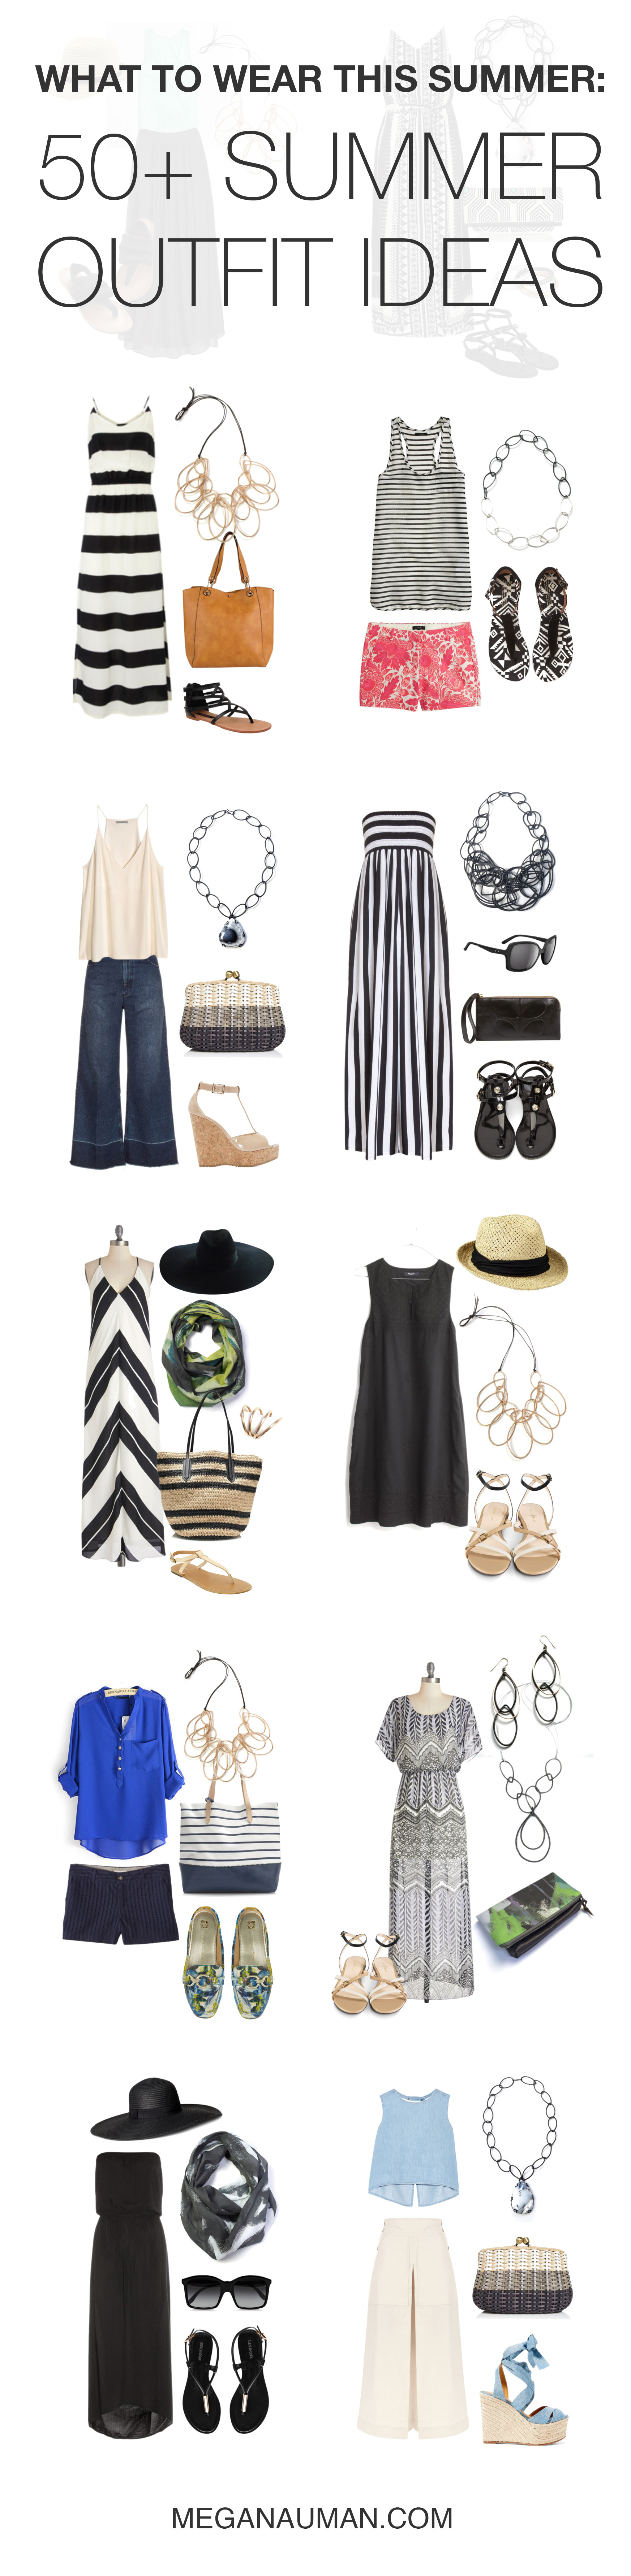 what to wear this summer 50+ summer outfit ideas (for